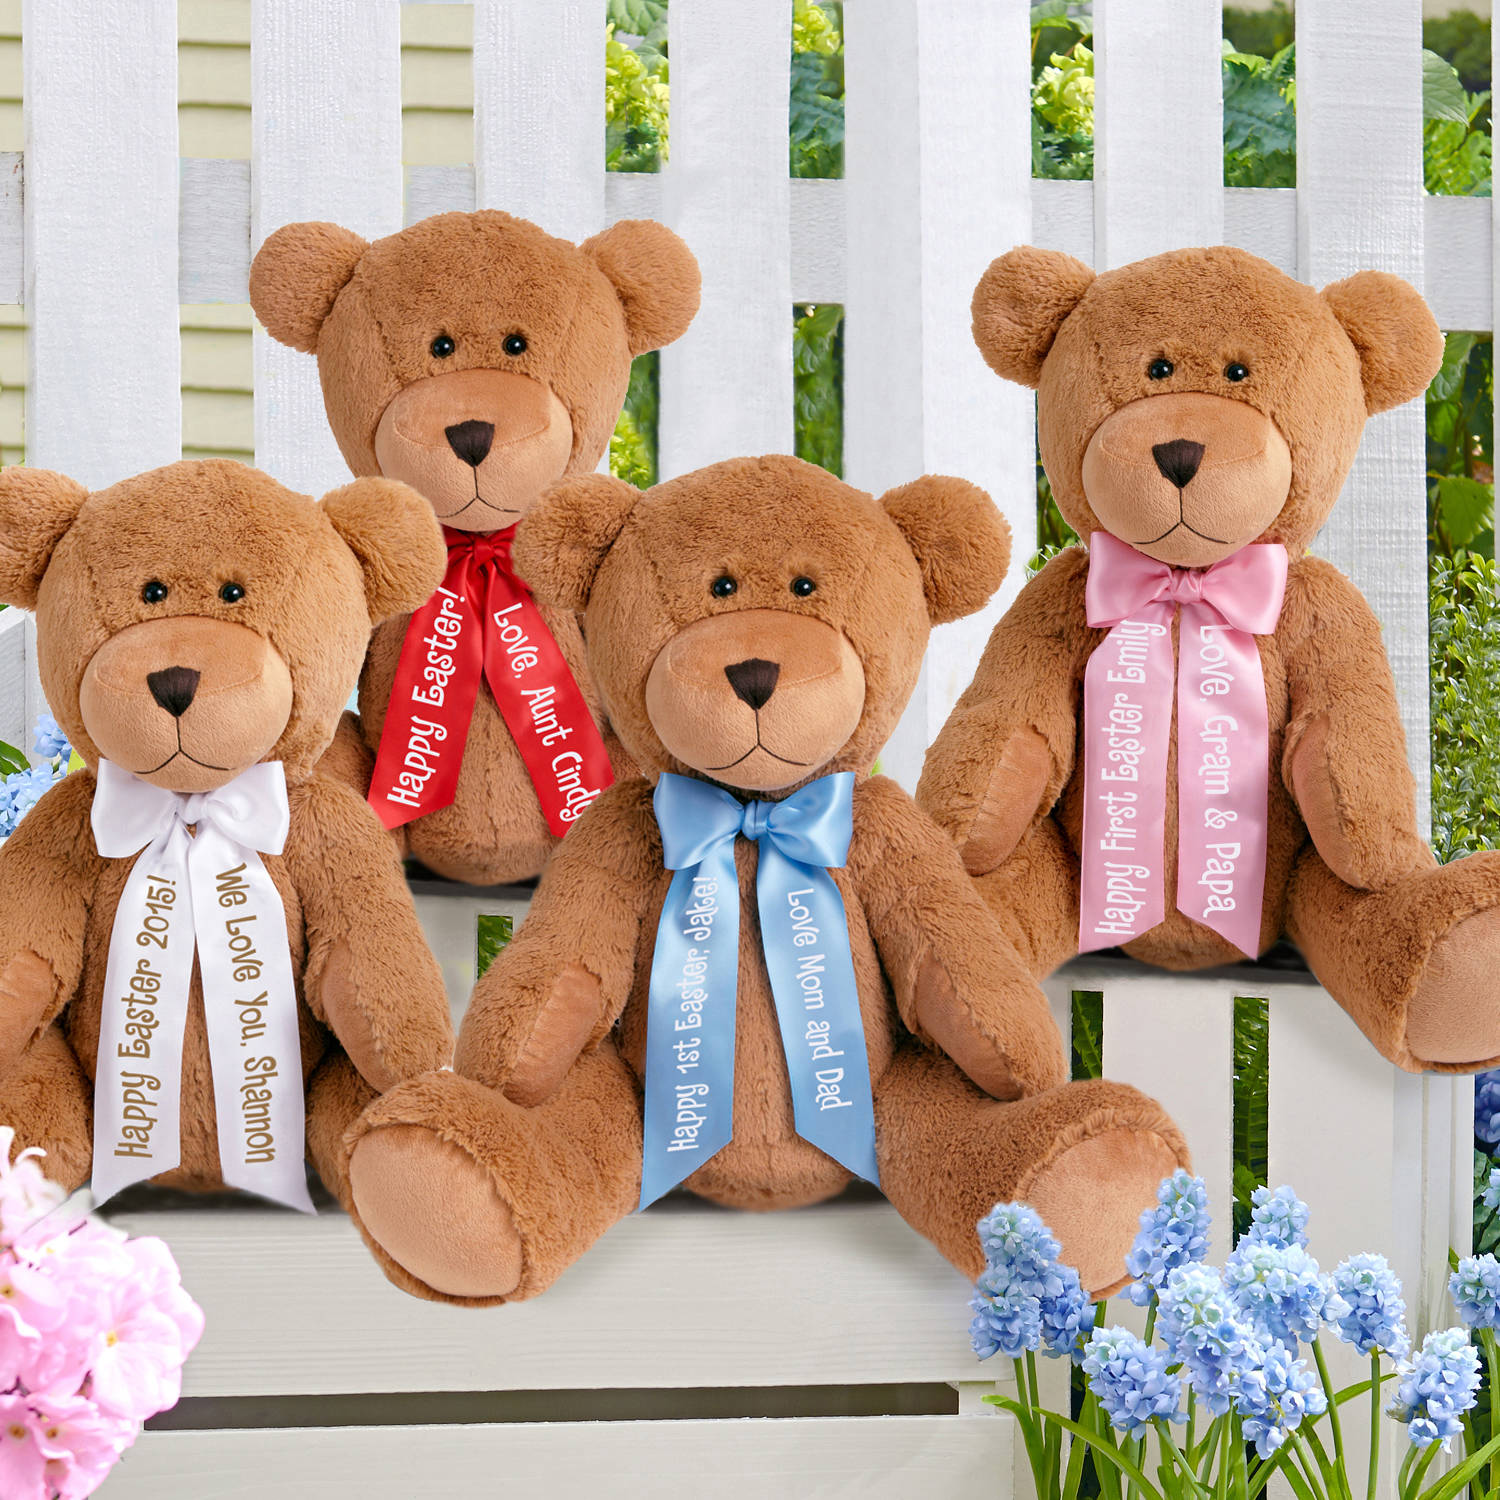 Personalized 27 giant teddy bear walmart negle Choice Image